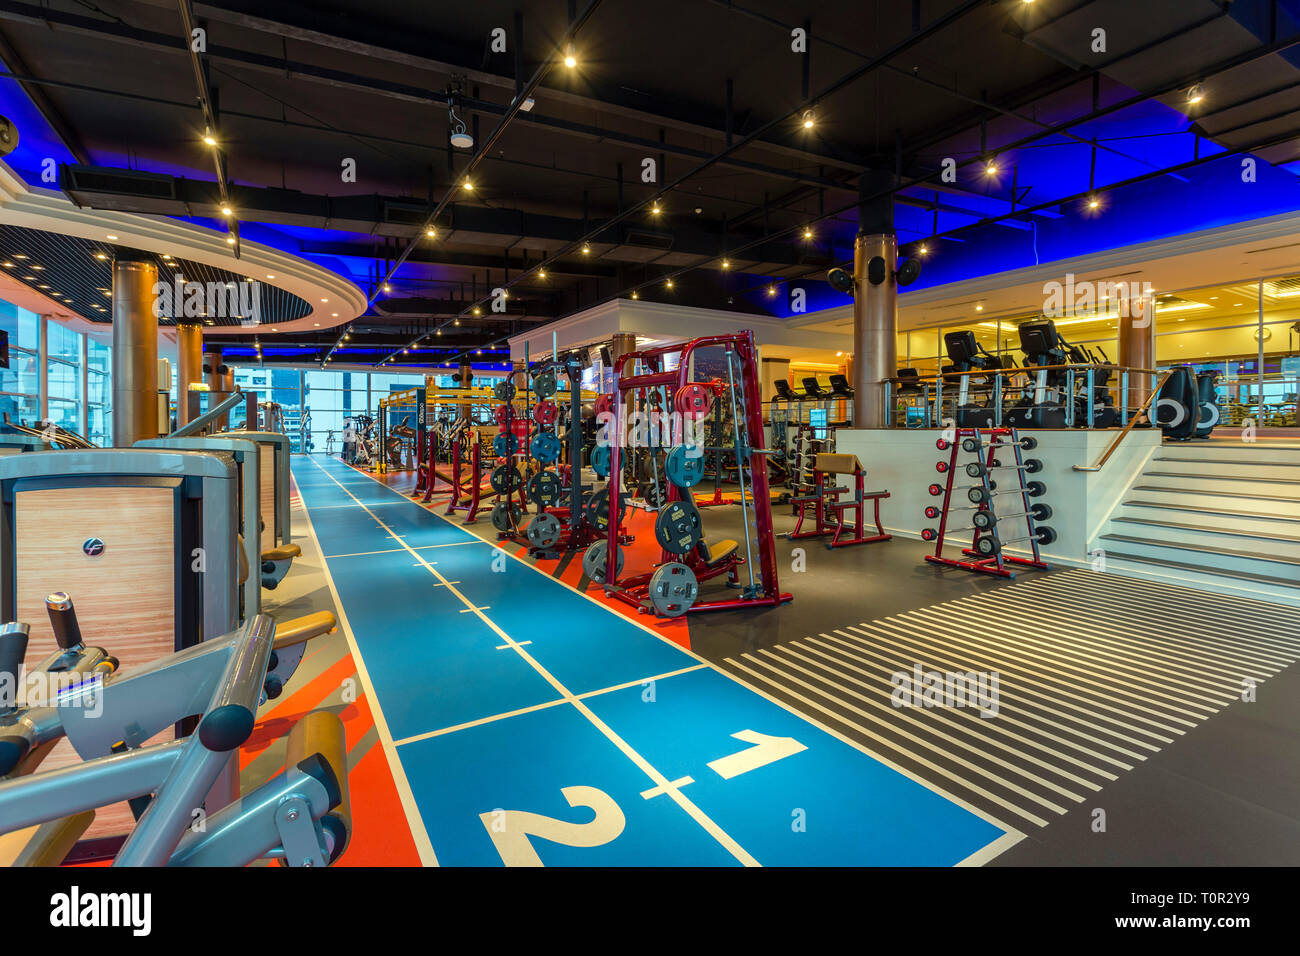 Interior of Cascade Club and Spa health club fitness centre located in Bangkok, Thailand. - Stock Image